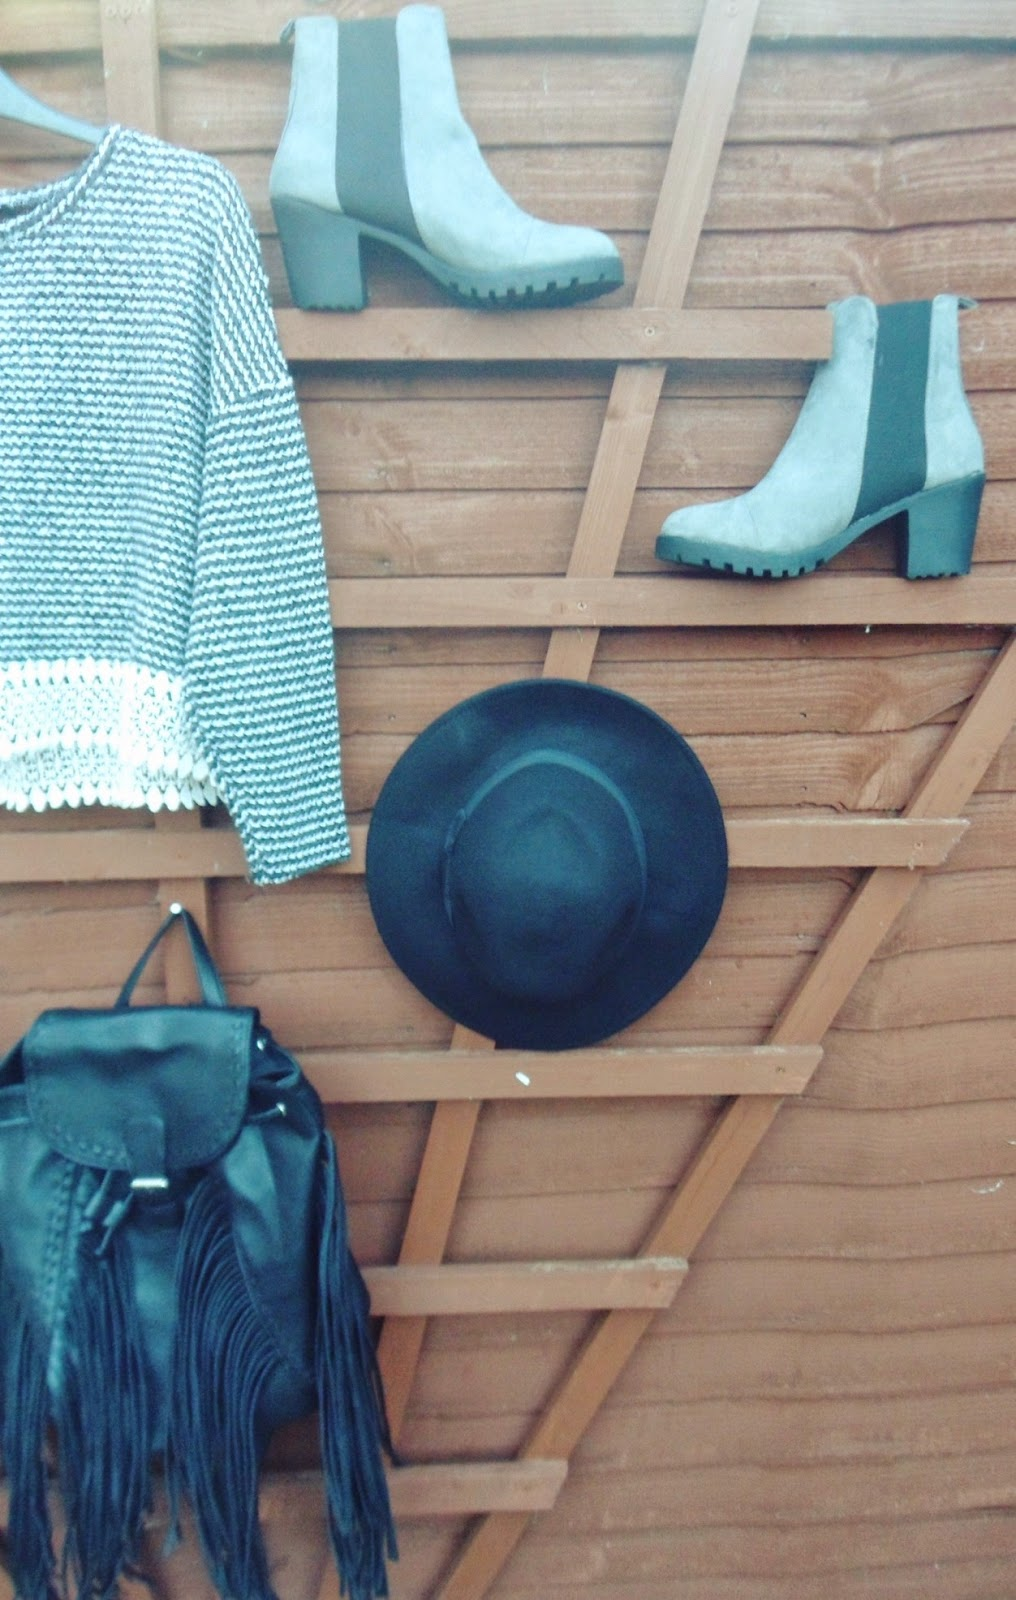 fashion, primarkhaul, fbloggers, fblogger, wiw, whatimwearing, ootd, outfitoftheday, lotd, lookoftheday, primark, highstreet, cleatedheel, boots, stripedjumper, whitedress, fringedbackpack, fedora, shoppinghaul